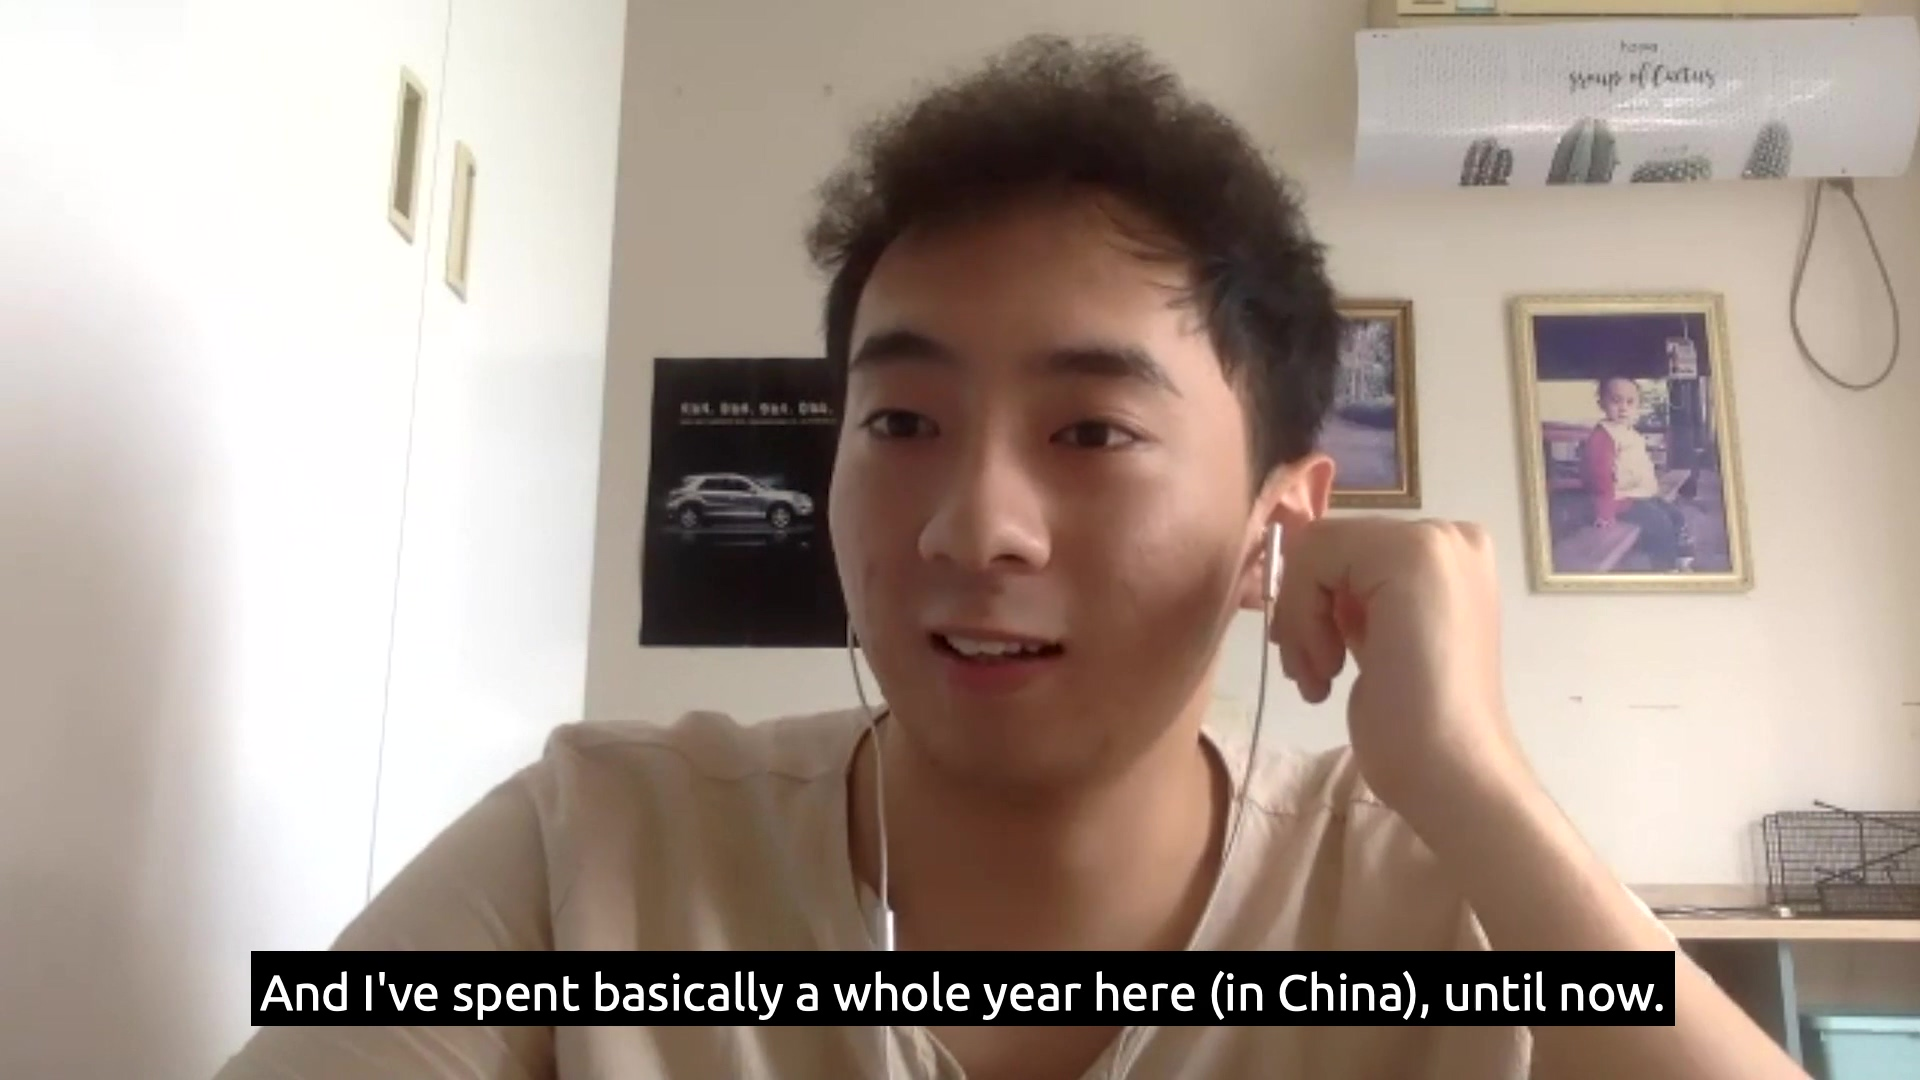 Studying remotely from China and how Studiosity can help